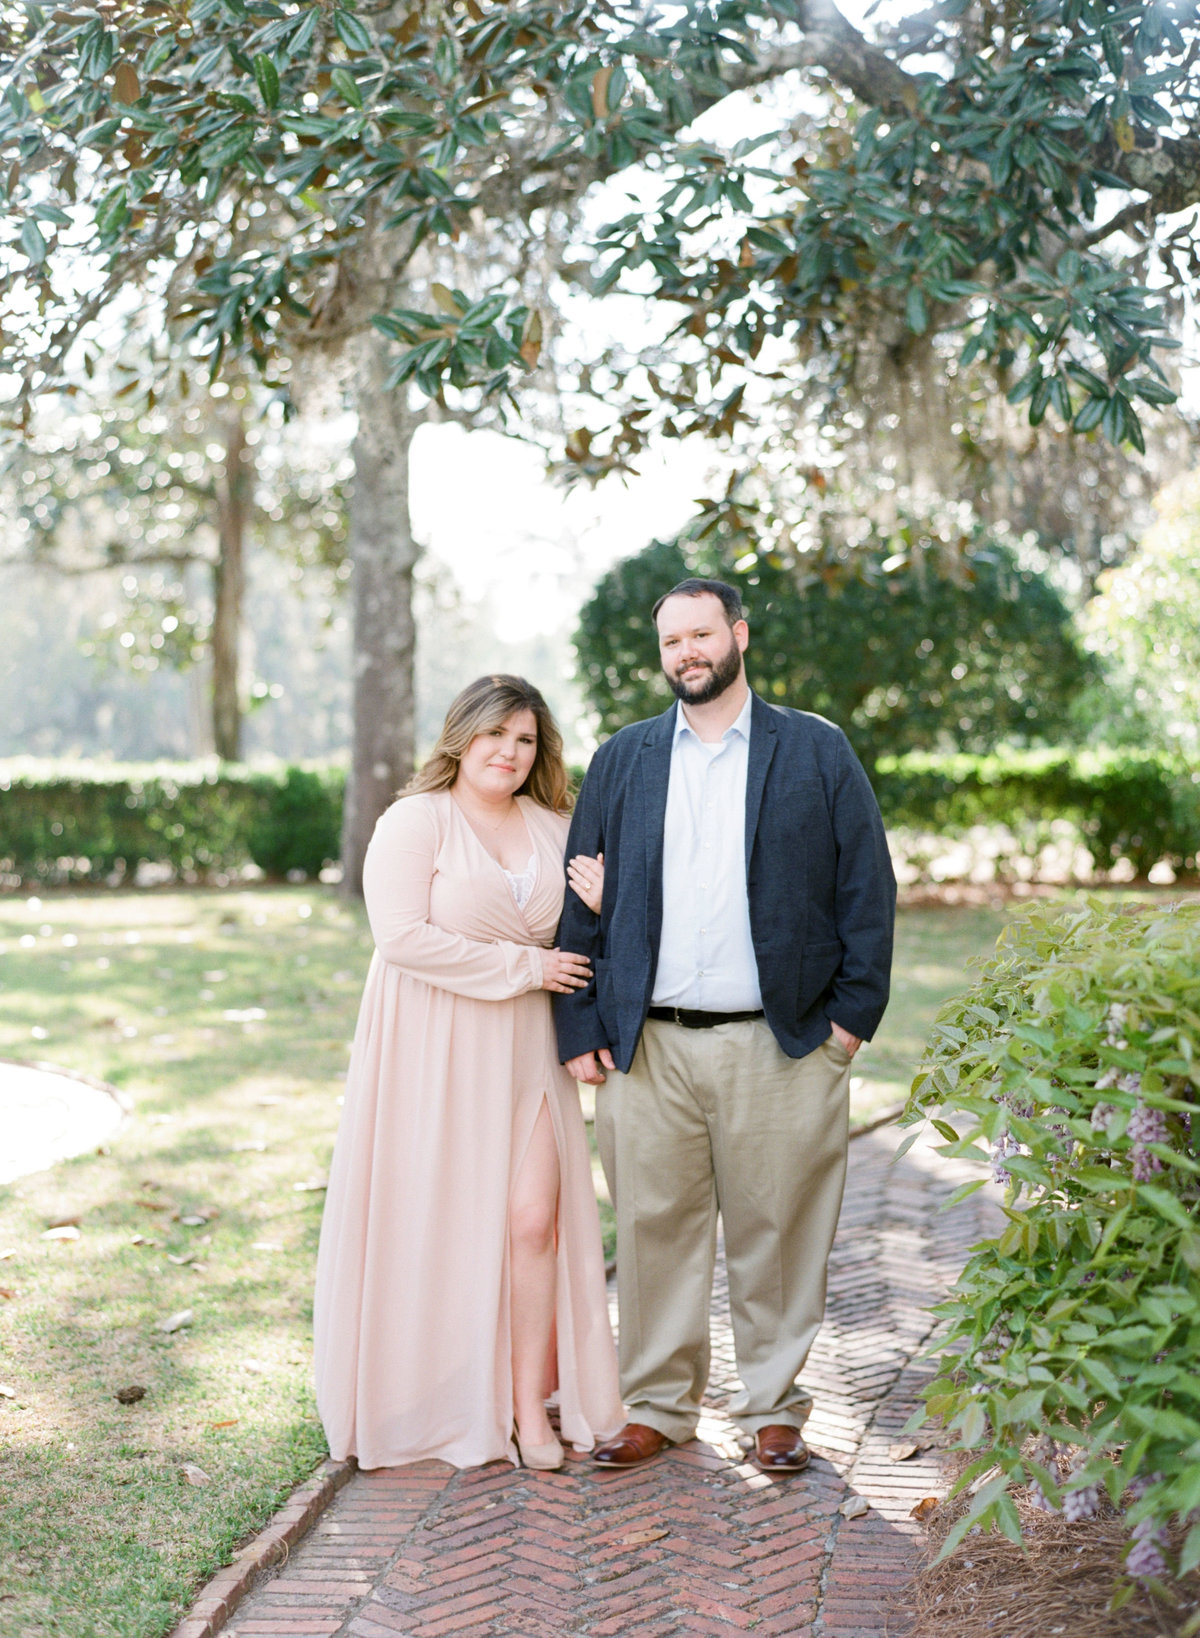 CourtneyWoodhamPhoto-110